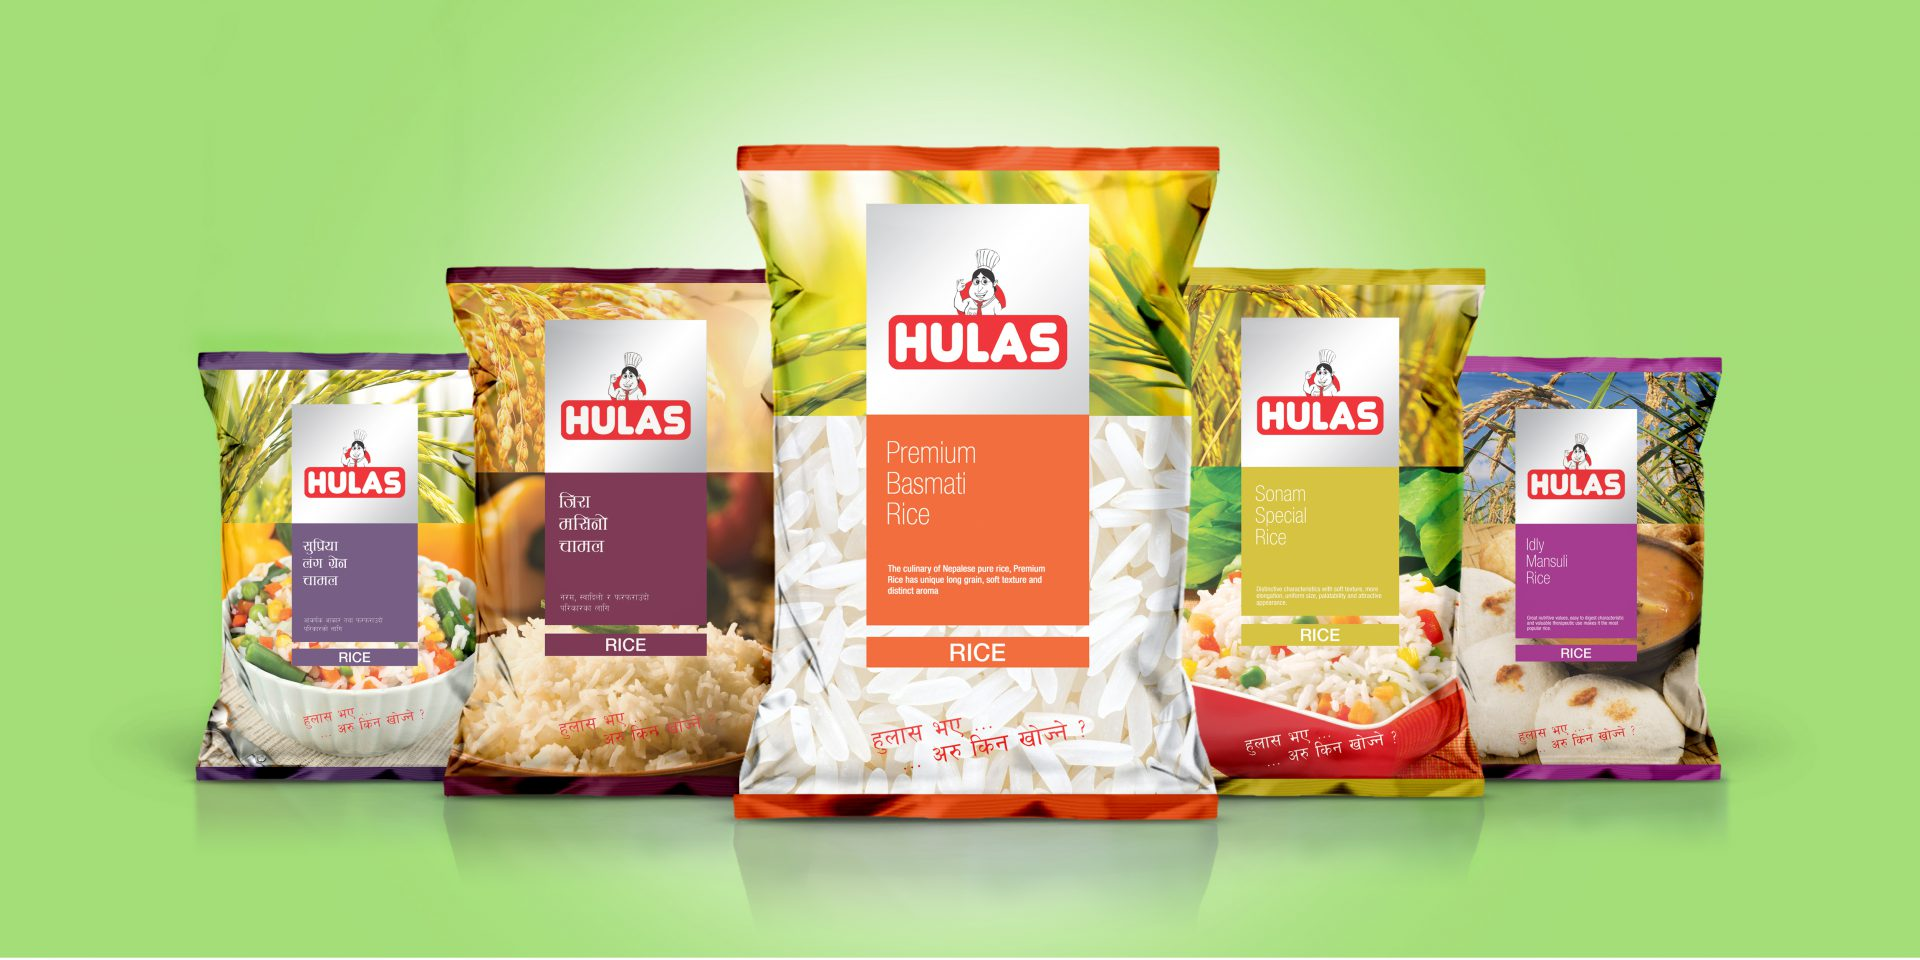 Hulas Food Packaging Design